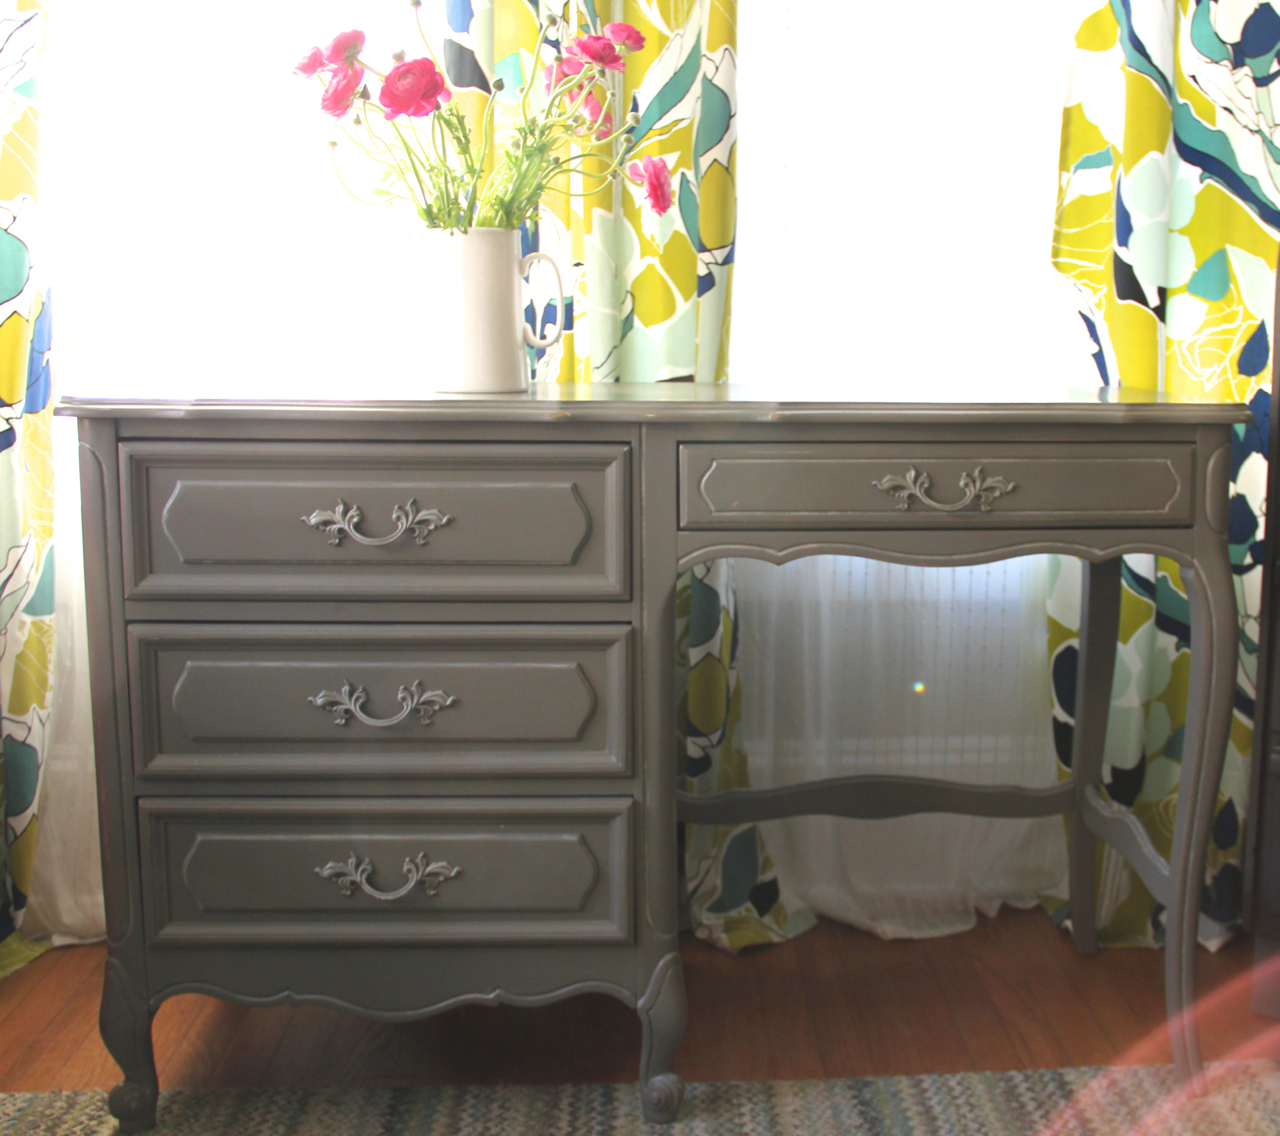 jo-torrijos-a-simpler-design-painted-furniture-gray-dresser.jpeg